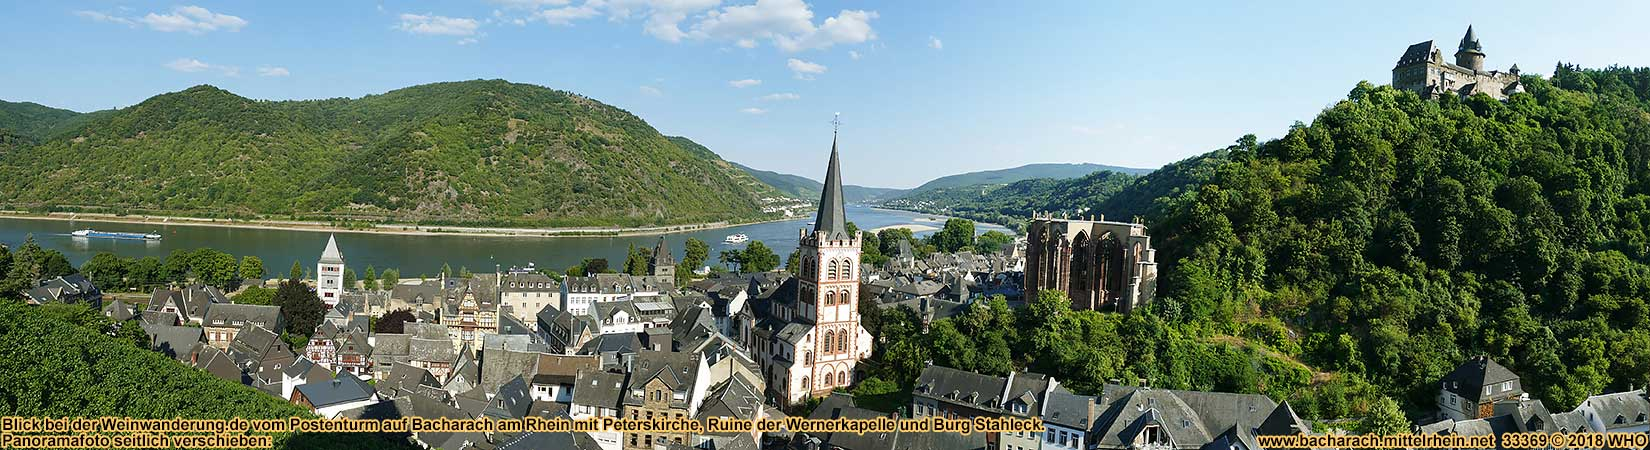 View from Postenturm to Bacharach on the Rhine River